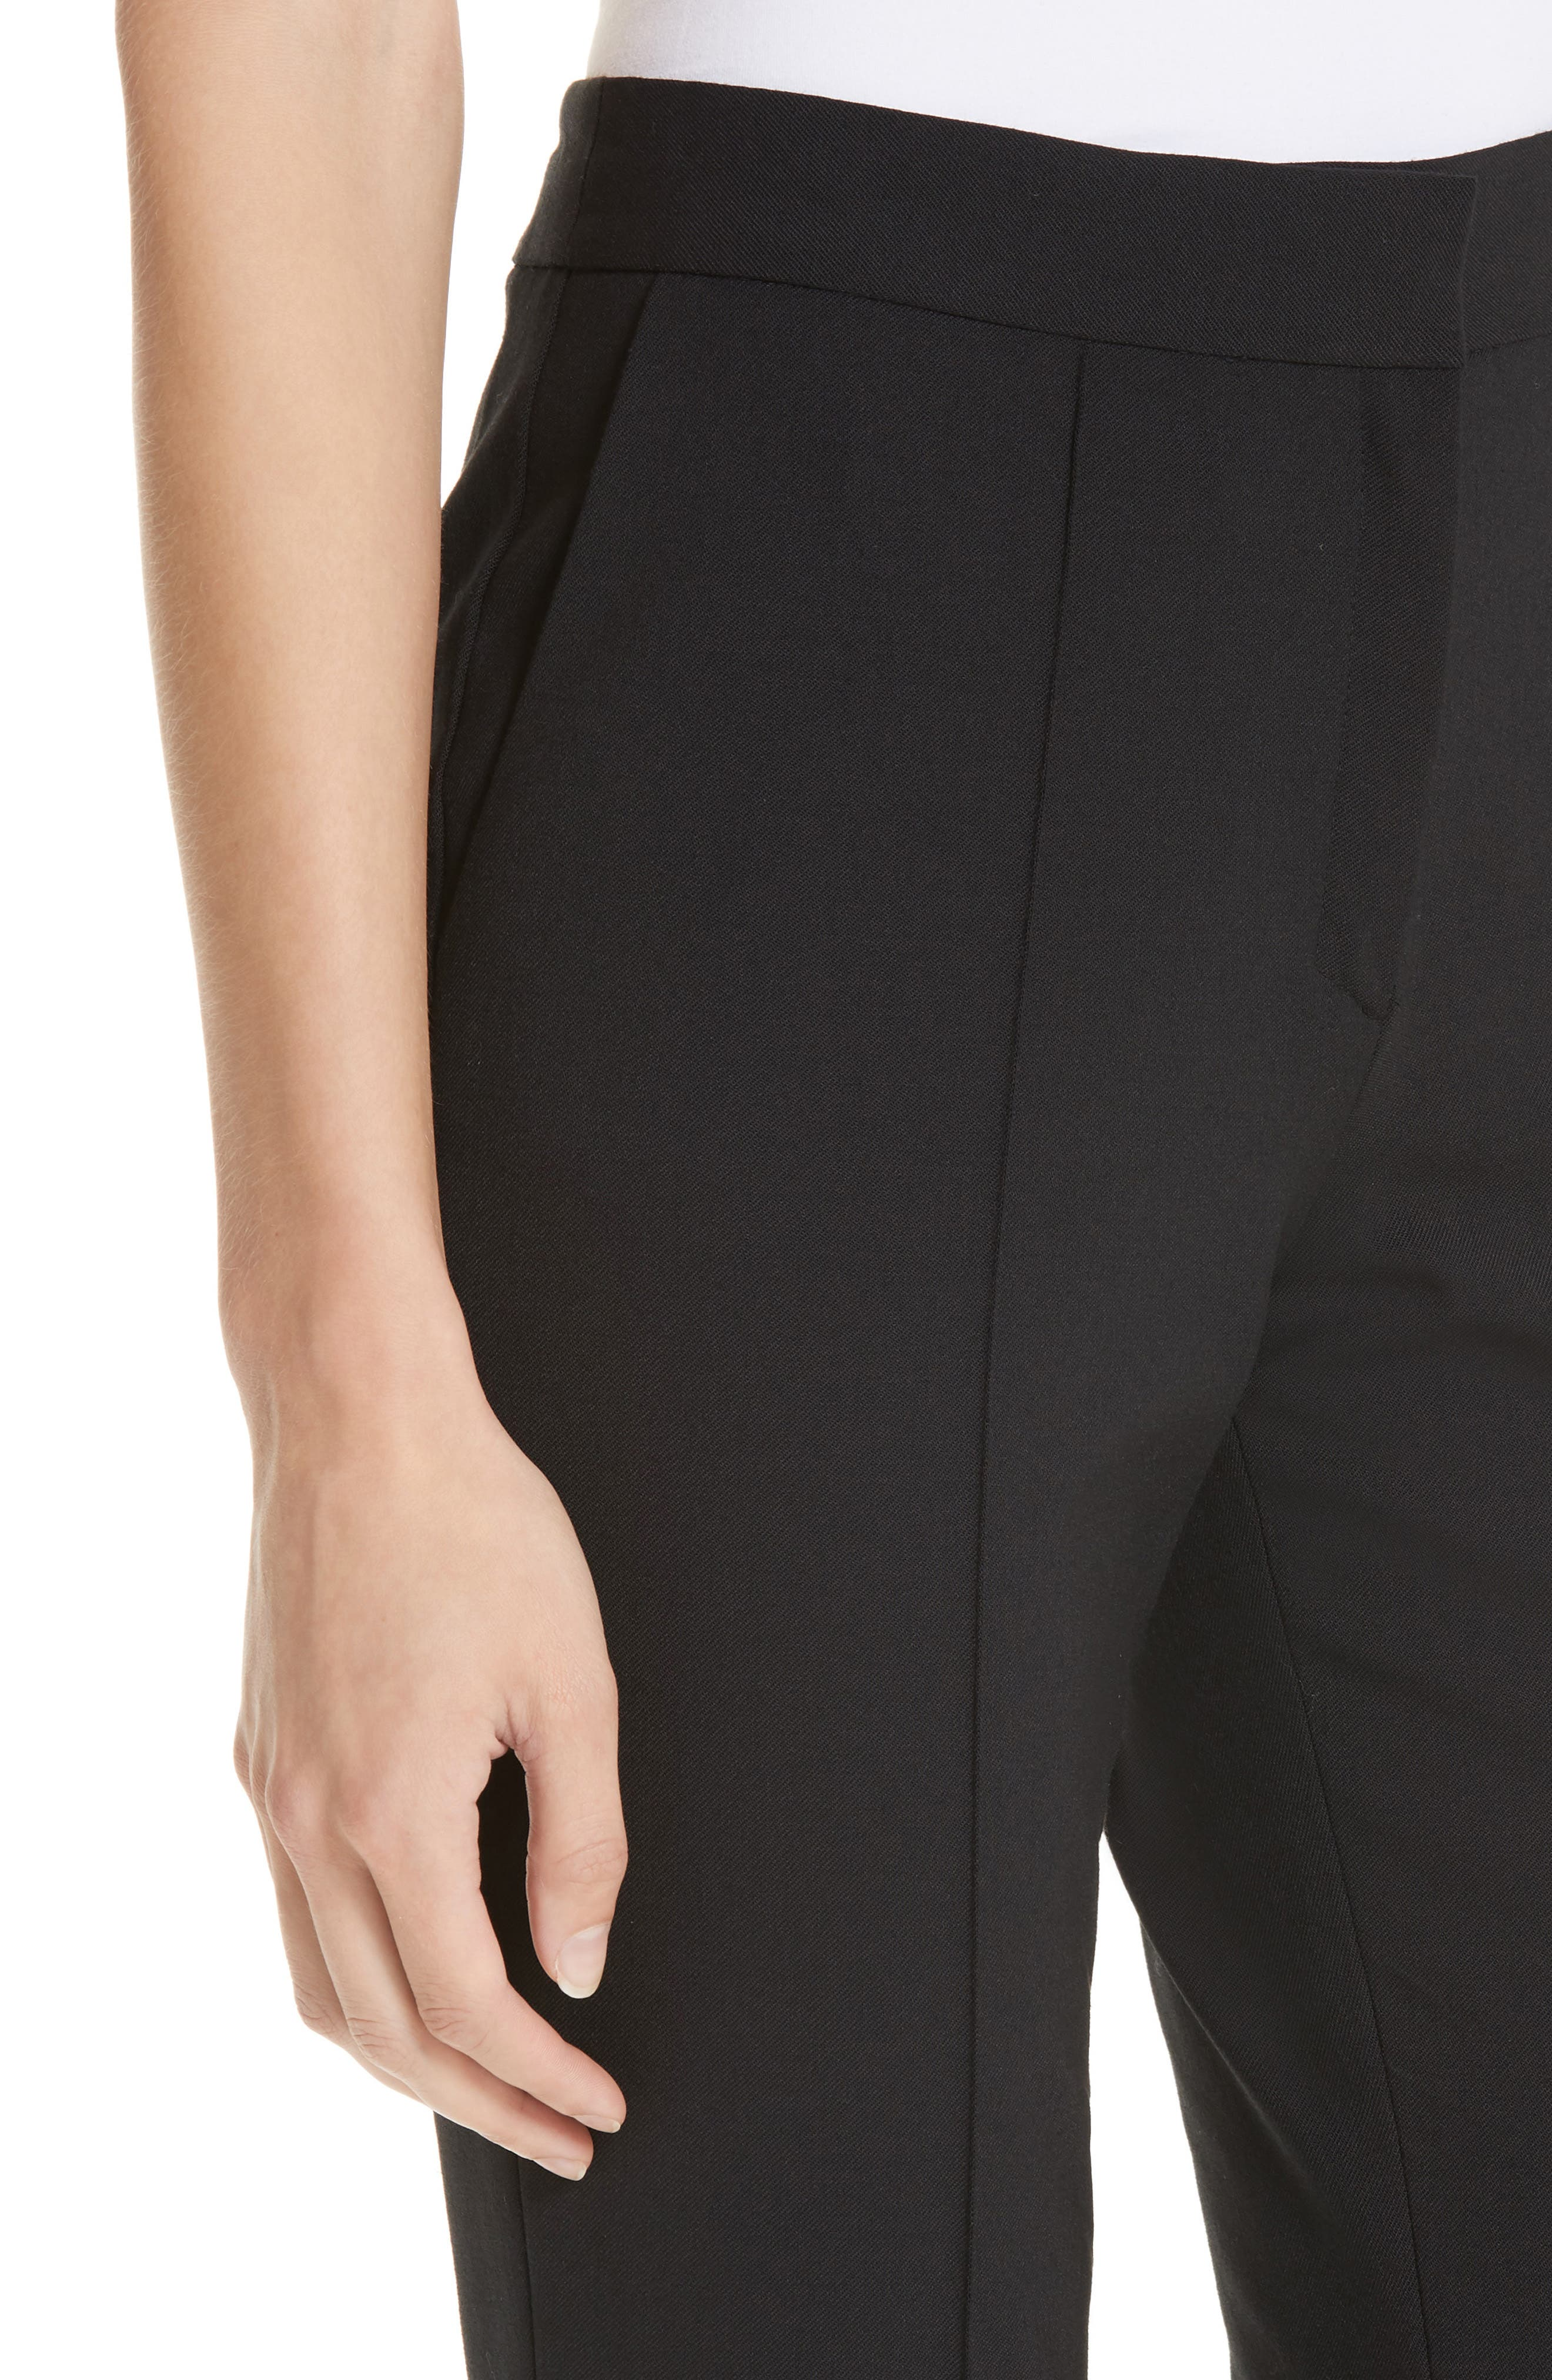 Pintucked Stretch Wool Blend Slim Trousers,                             Alternate thumbnail 4, color,                             BLACK